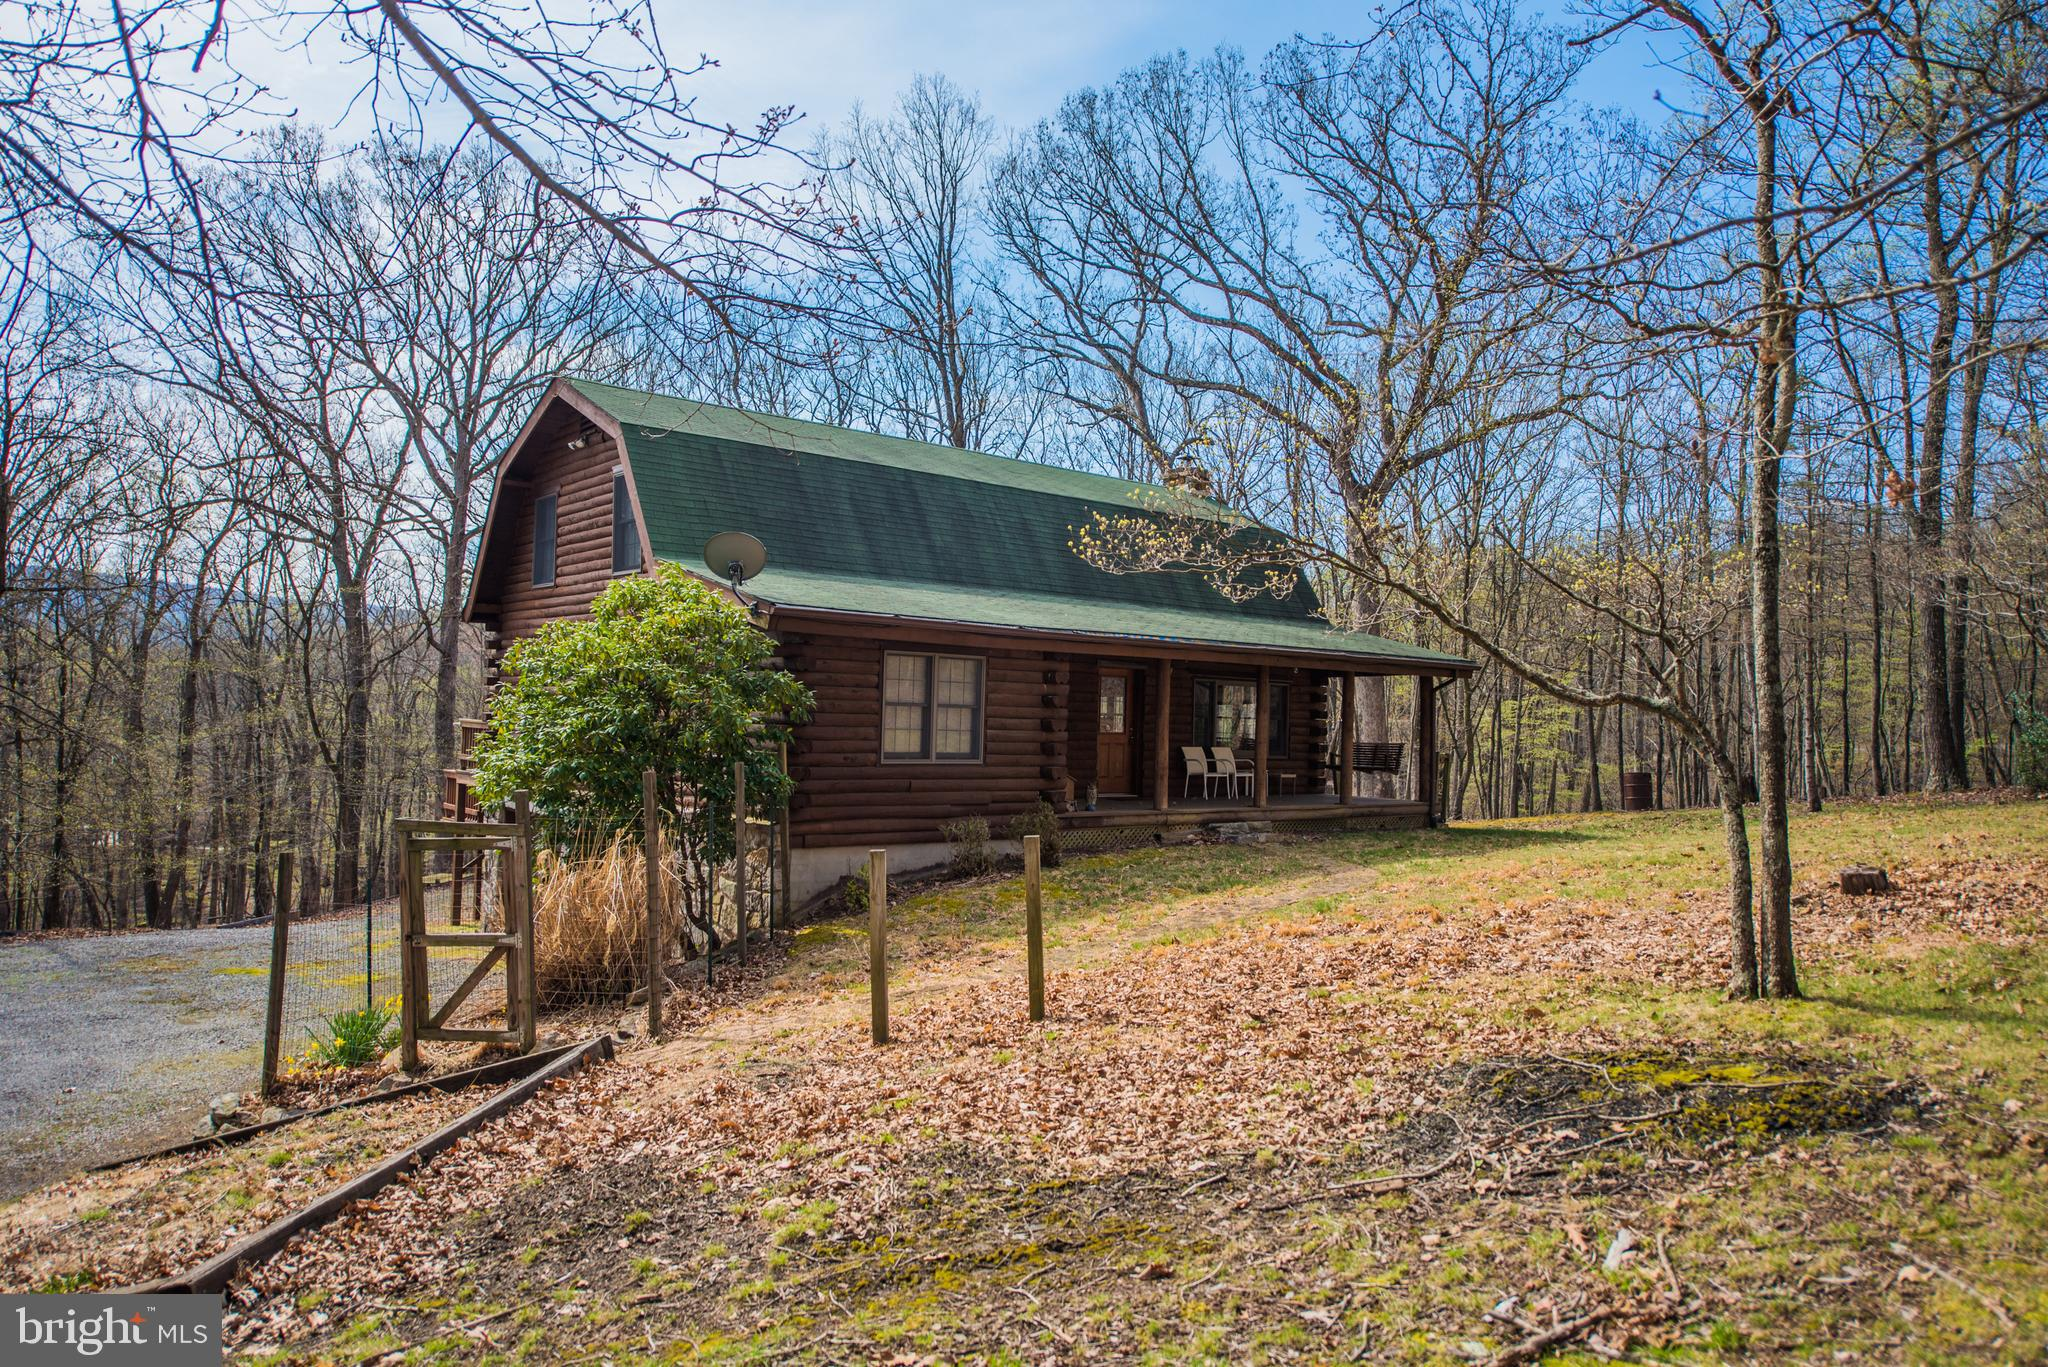 Nice 3 level log home on 4.8 mostly wooded acres with partially fenced yard. Enjoy sitting on the covered front porch or rear deck to watch the wildlife. Private river access on the Cacapon River for the community with picnic area with bath house and barbecue areas.  Three bedroom and two baths, lovely living room with woodstove, open dining kitchen area.  Basement has nice workshop area and two car garage.